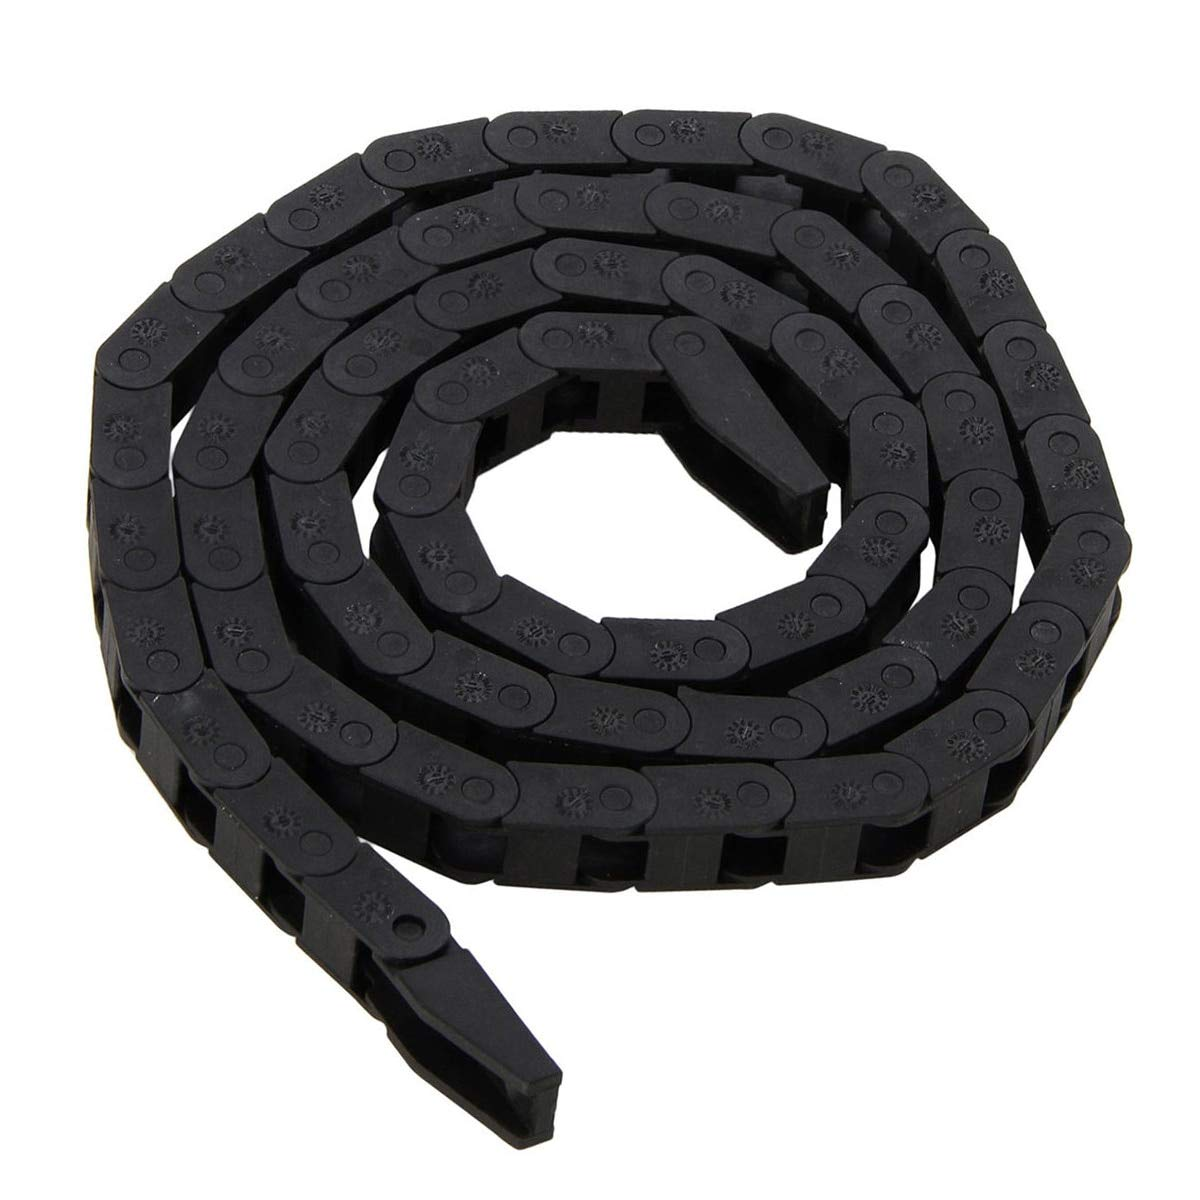 Ochoos 1pc Ochoos Black Plastic Nylon Cable Carrier Drag Chain Nested Towline Wire Carriers 77mm for CNC Machine Tool Water Pipes